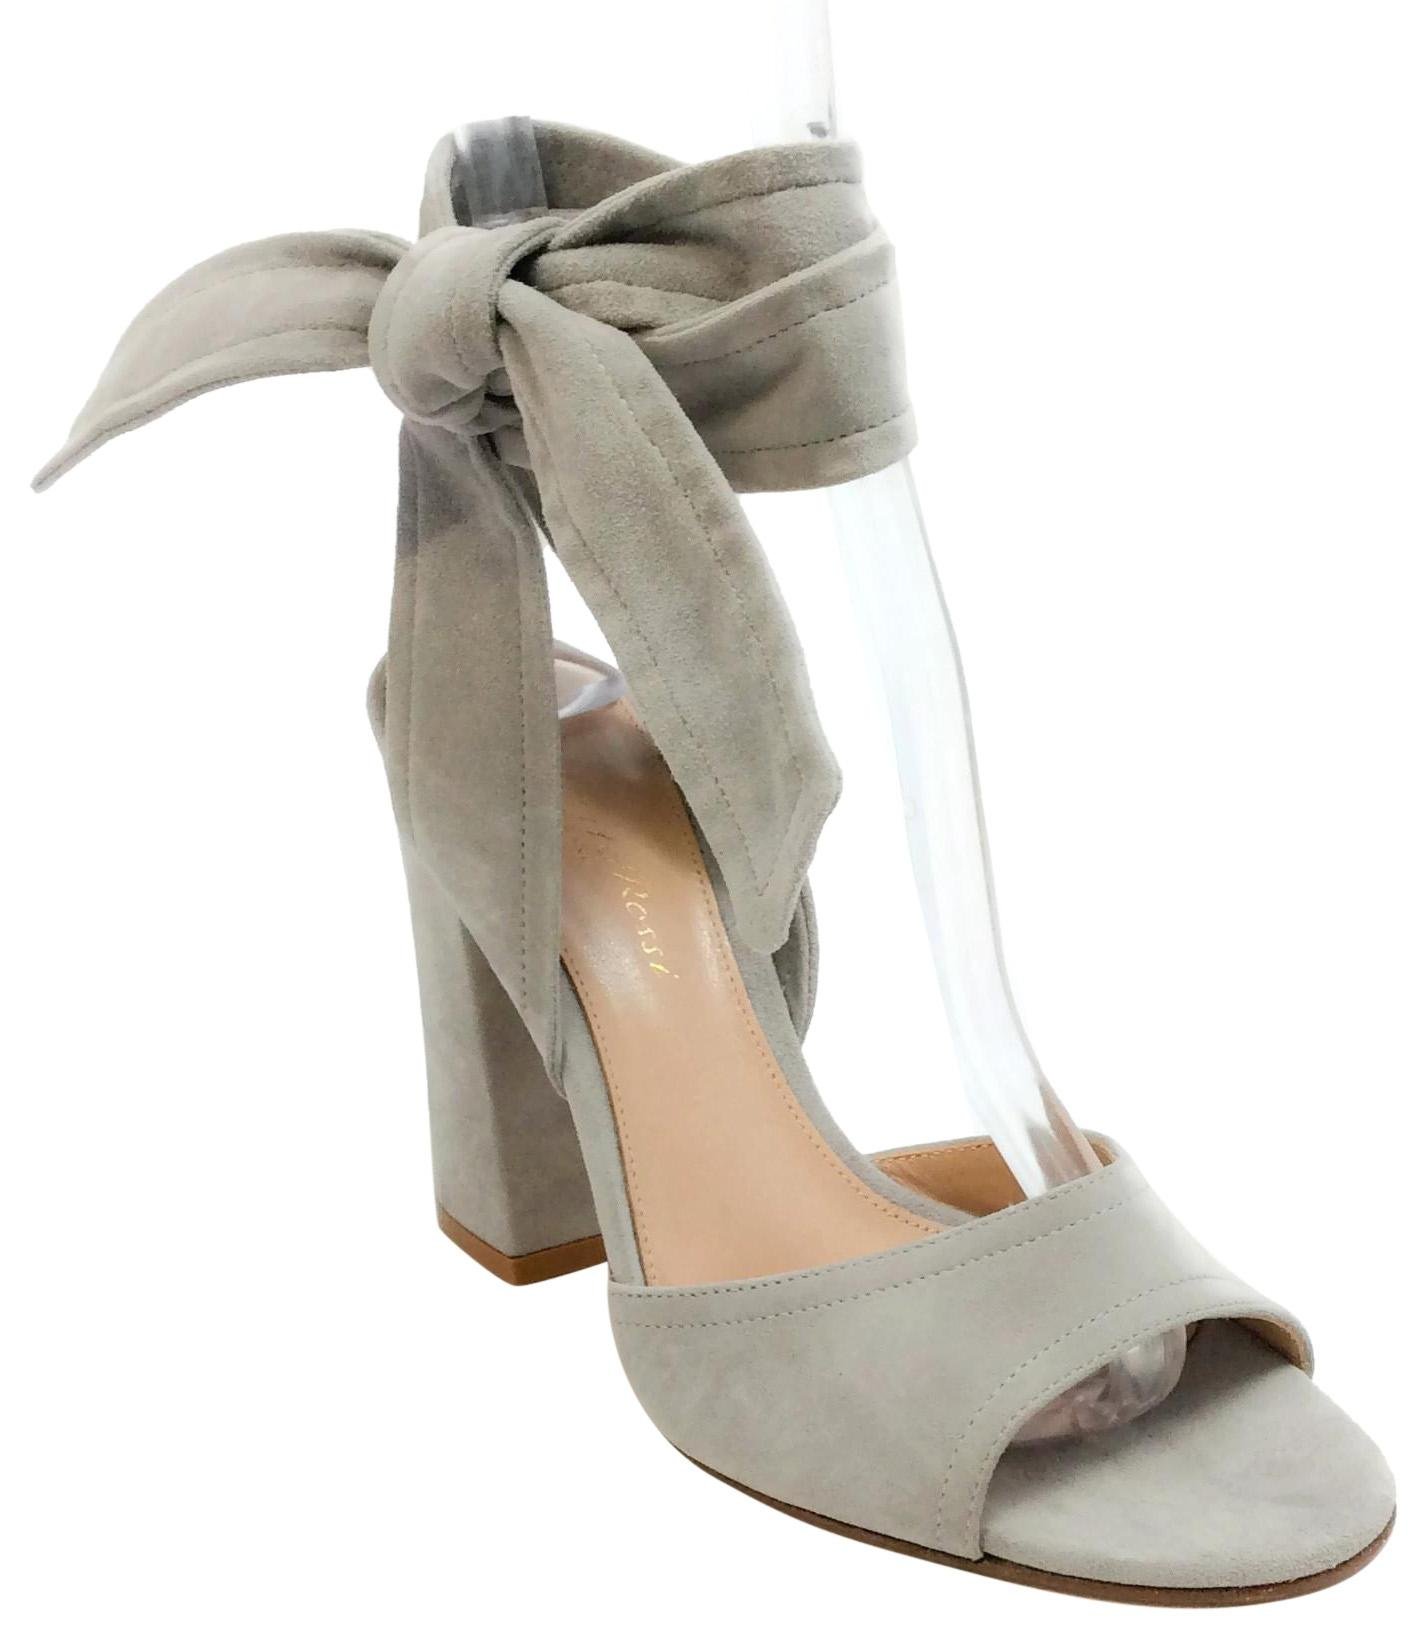 discount clearance 2014 cheap sale Gianvito Rossi Tan Suede Silver ... clearance extremely o0H2jCSg